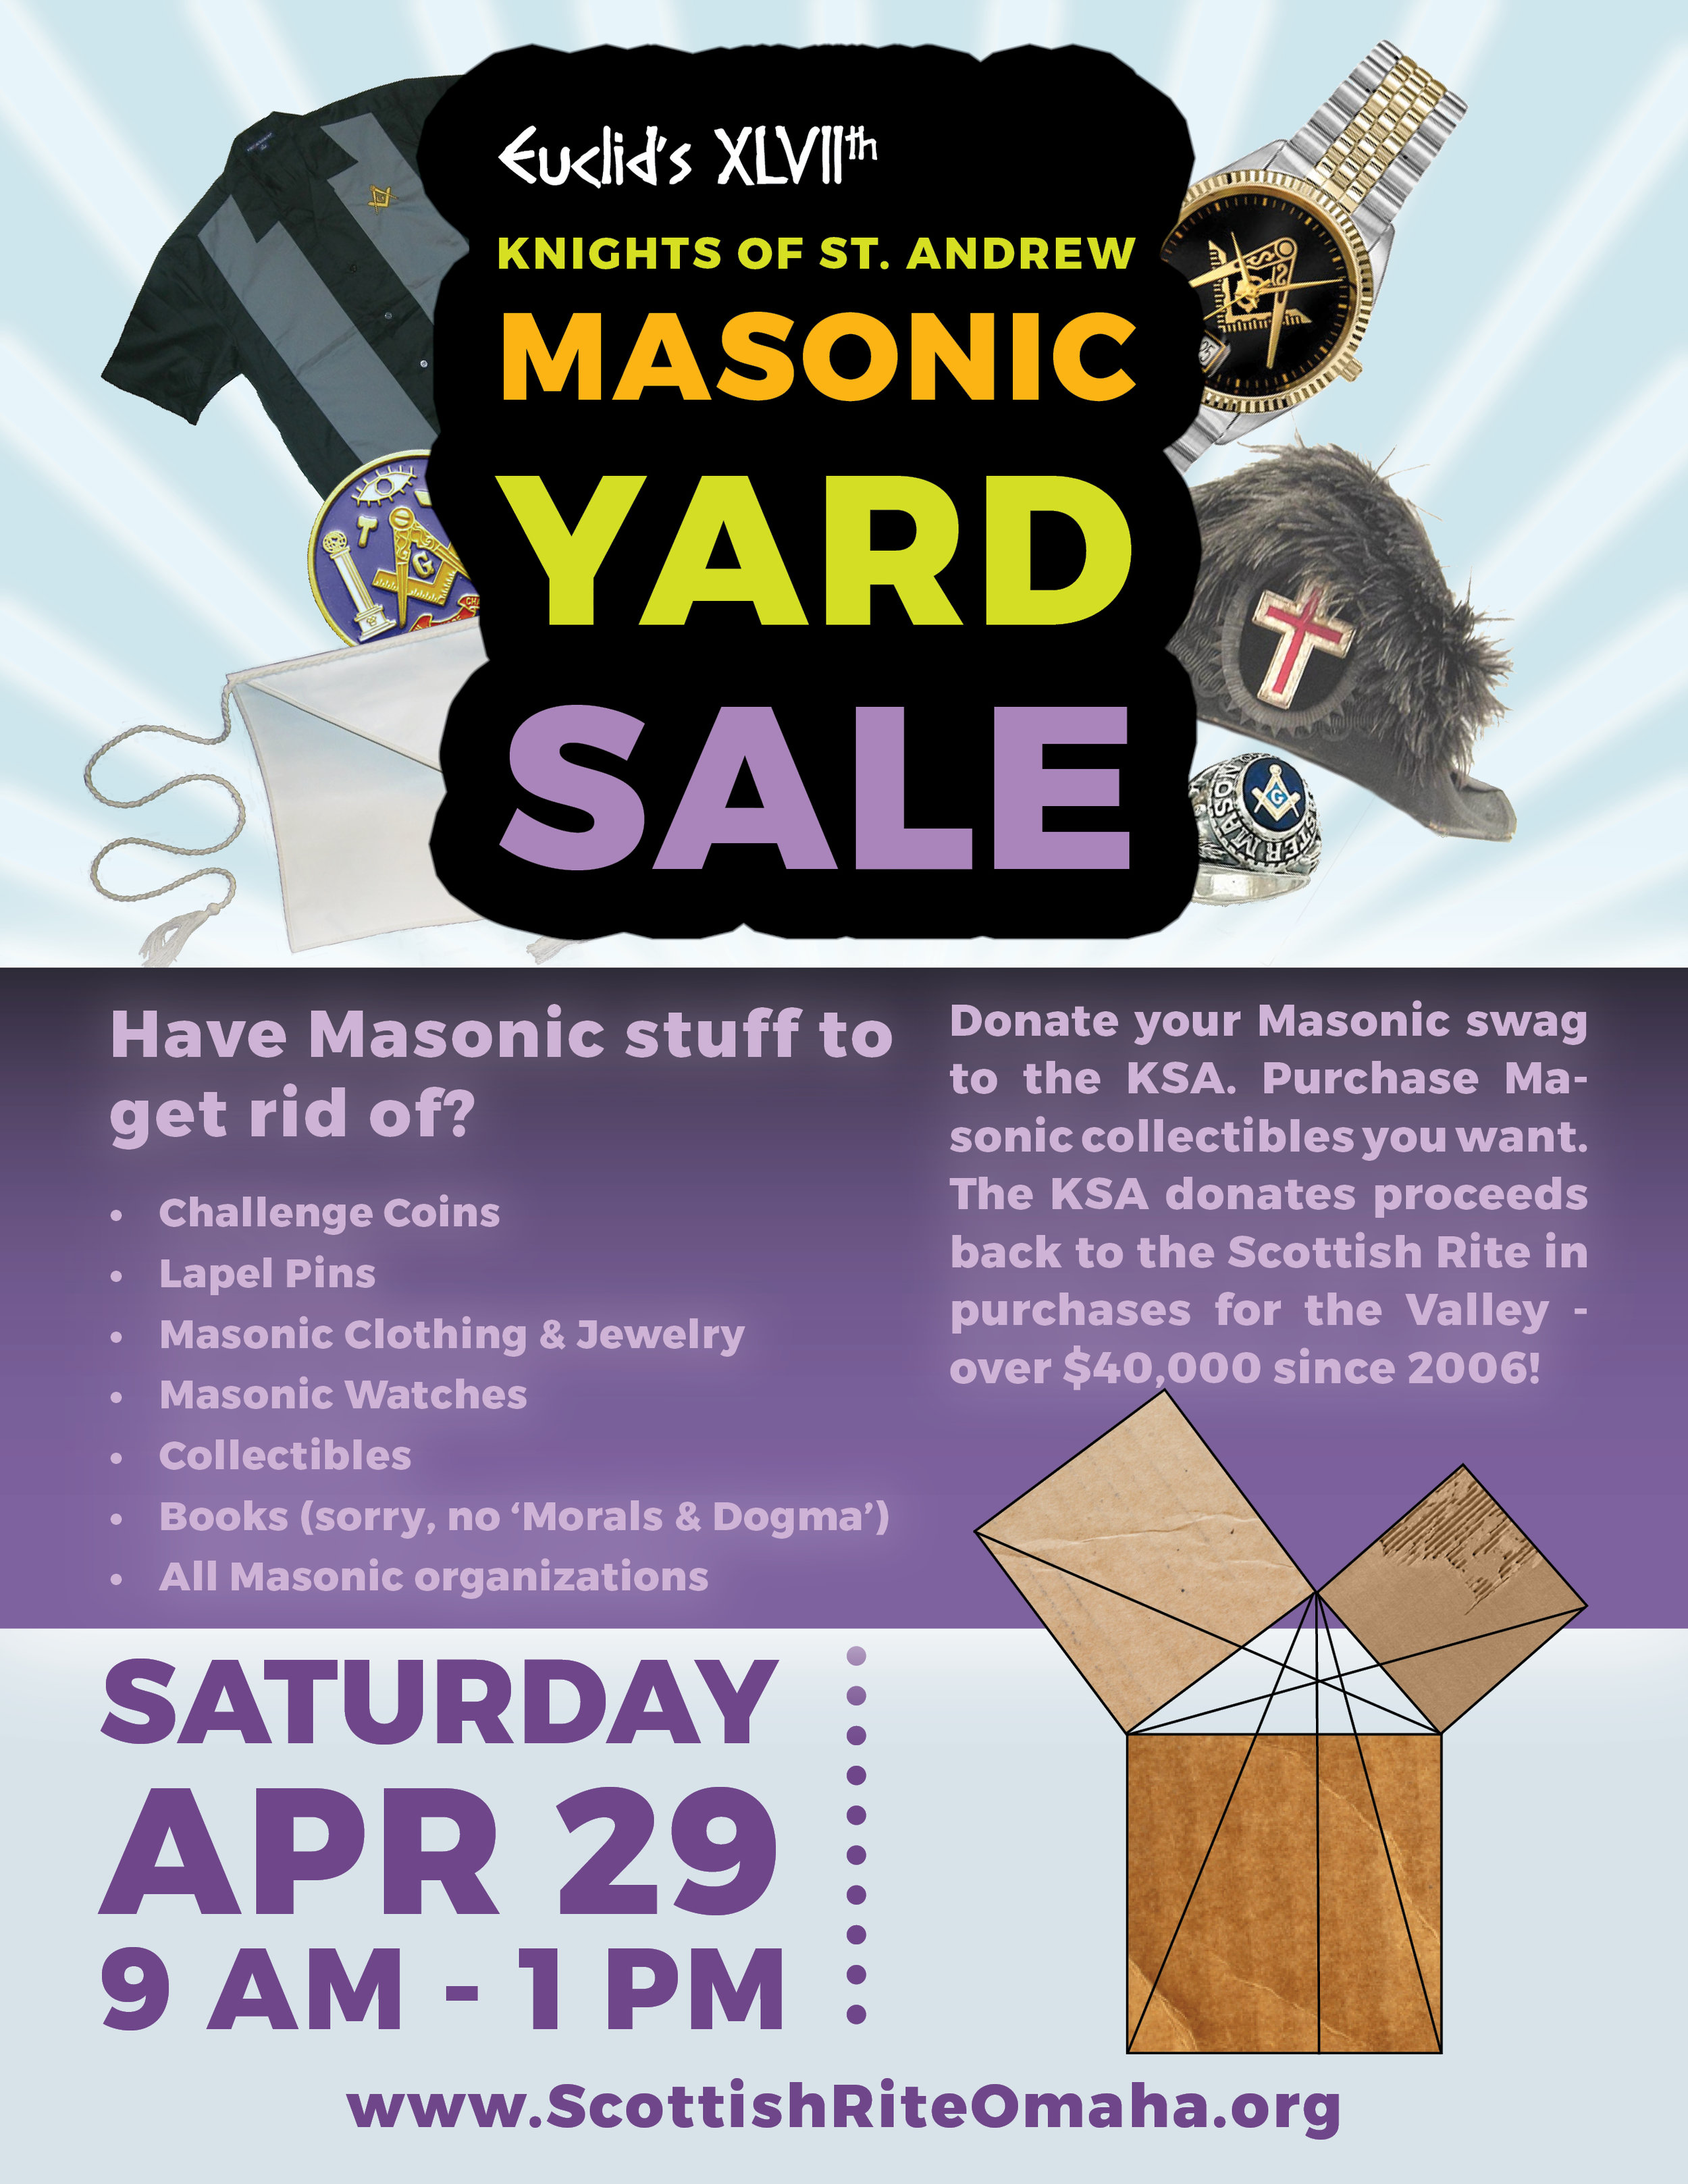 The KSA Masonic Yard Sale raised over $800, which will be donated back to the Scottish Rite in purchases. Since 2006, the KSA has donated back over $40,000, including defibrillators, CPR training, granite benches in the courtyard, bronze lanterns in the 33° Board room and so much more!